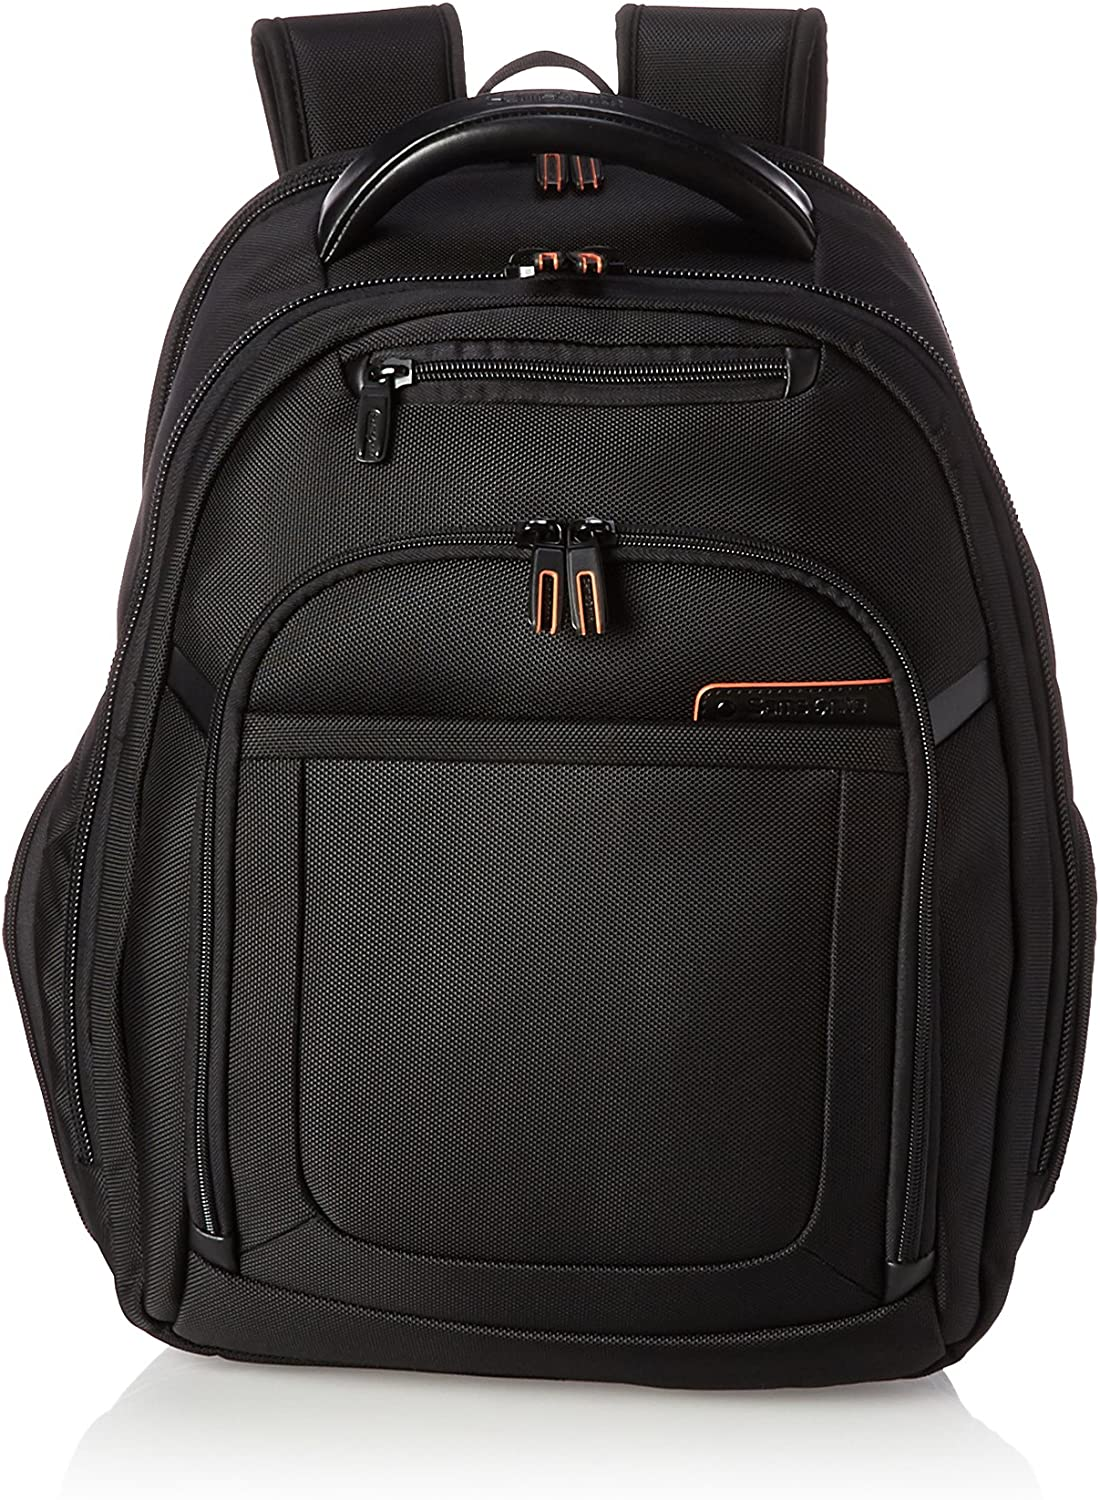 Samsonite Unisex PRO 4 DLX Backpack PFT TSA